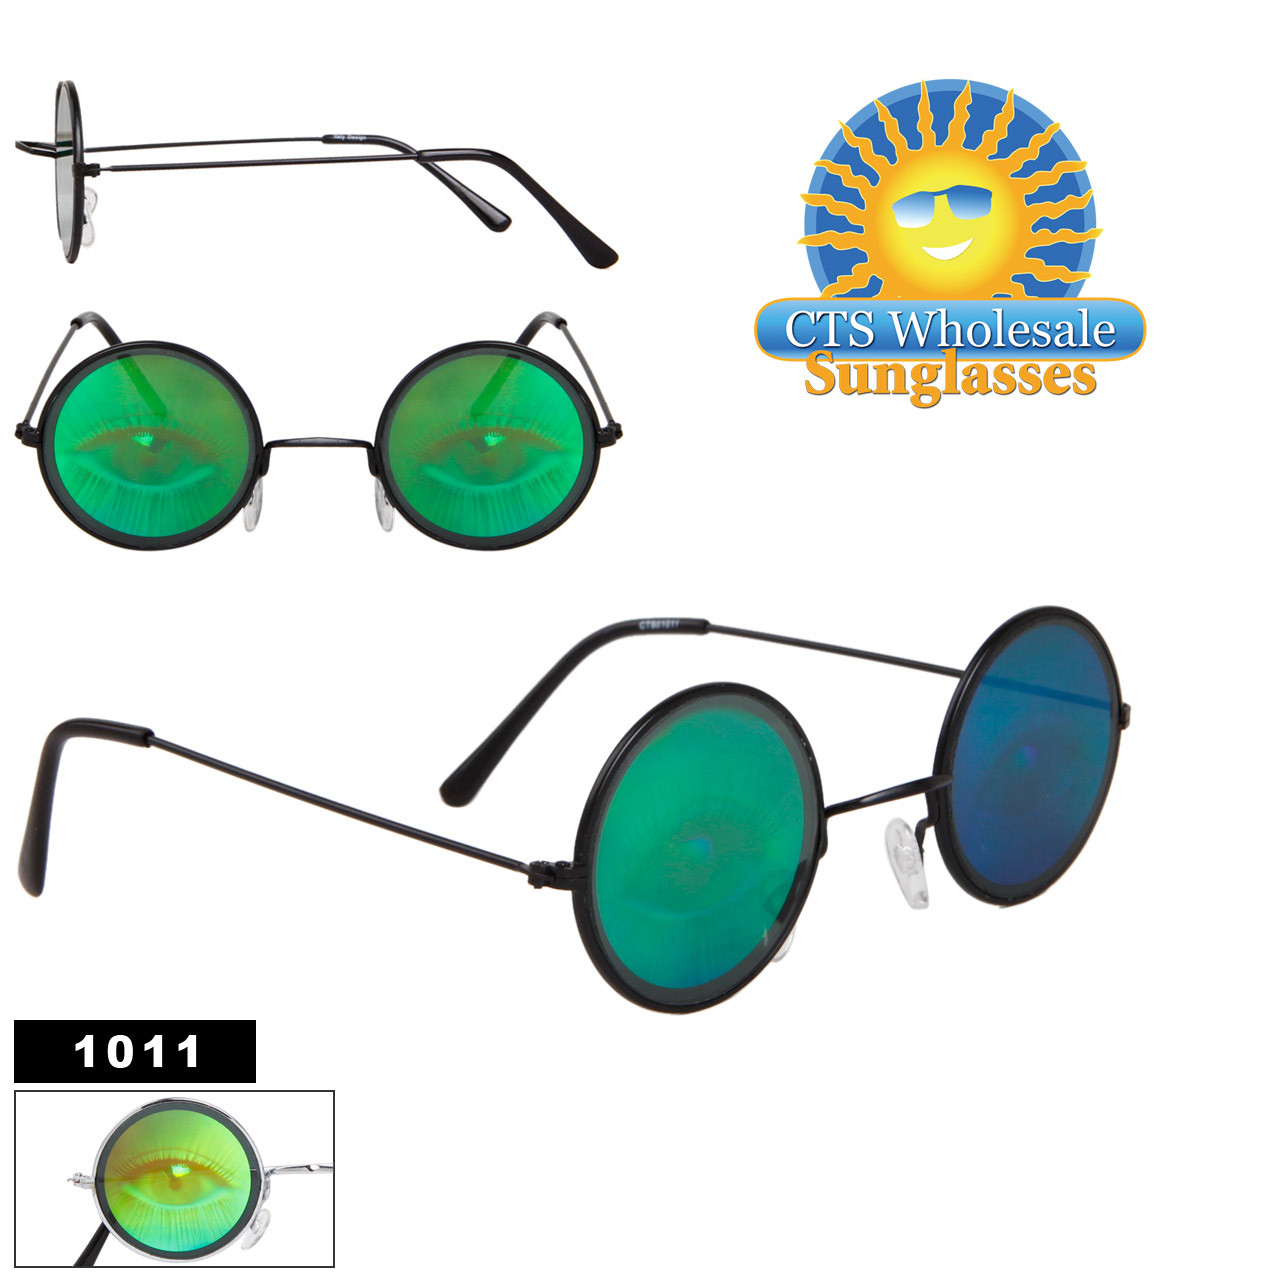 Eyeball Hologram Sunglasses 1011